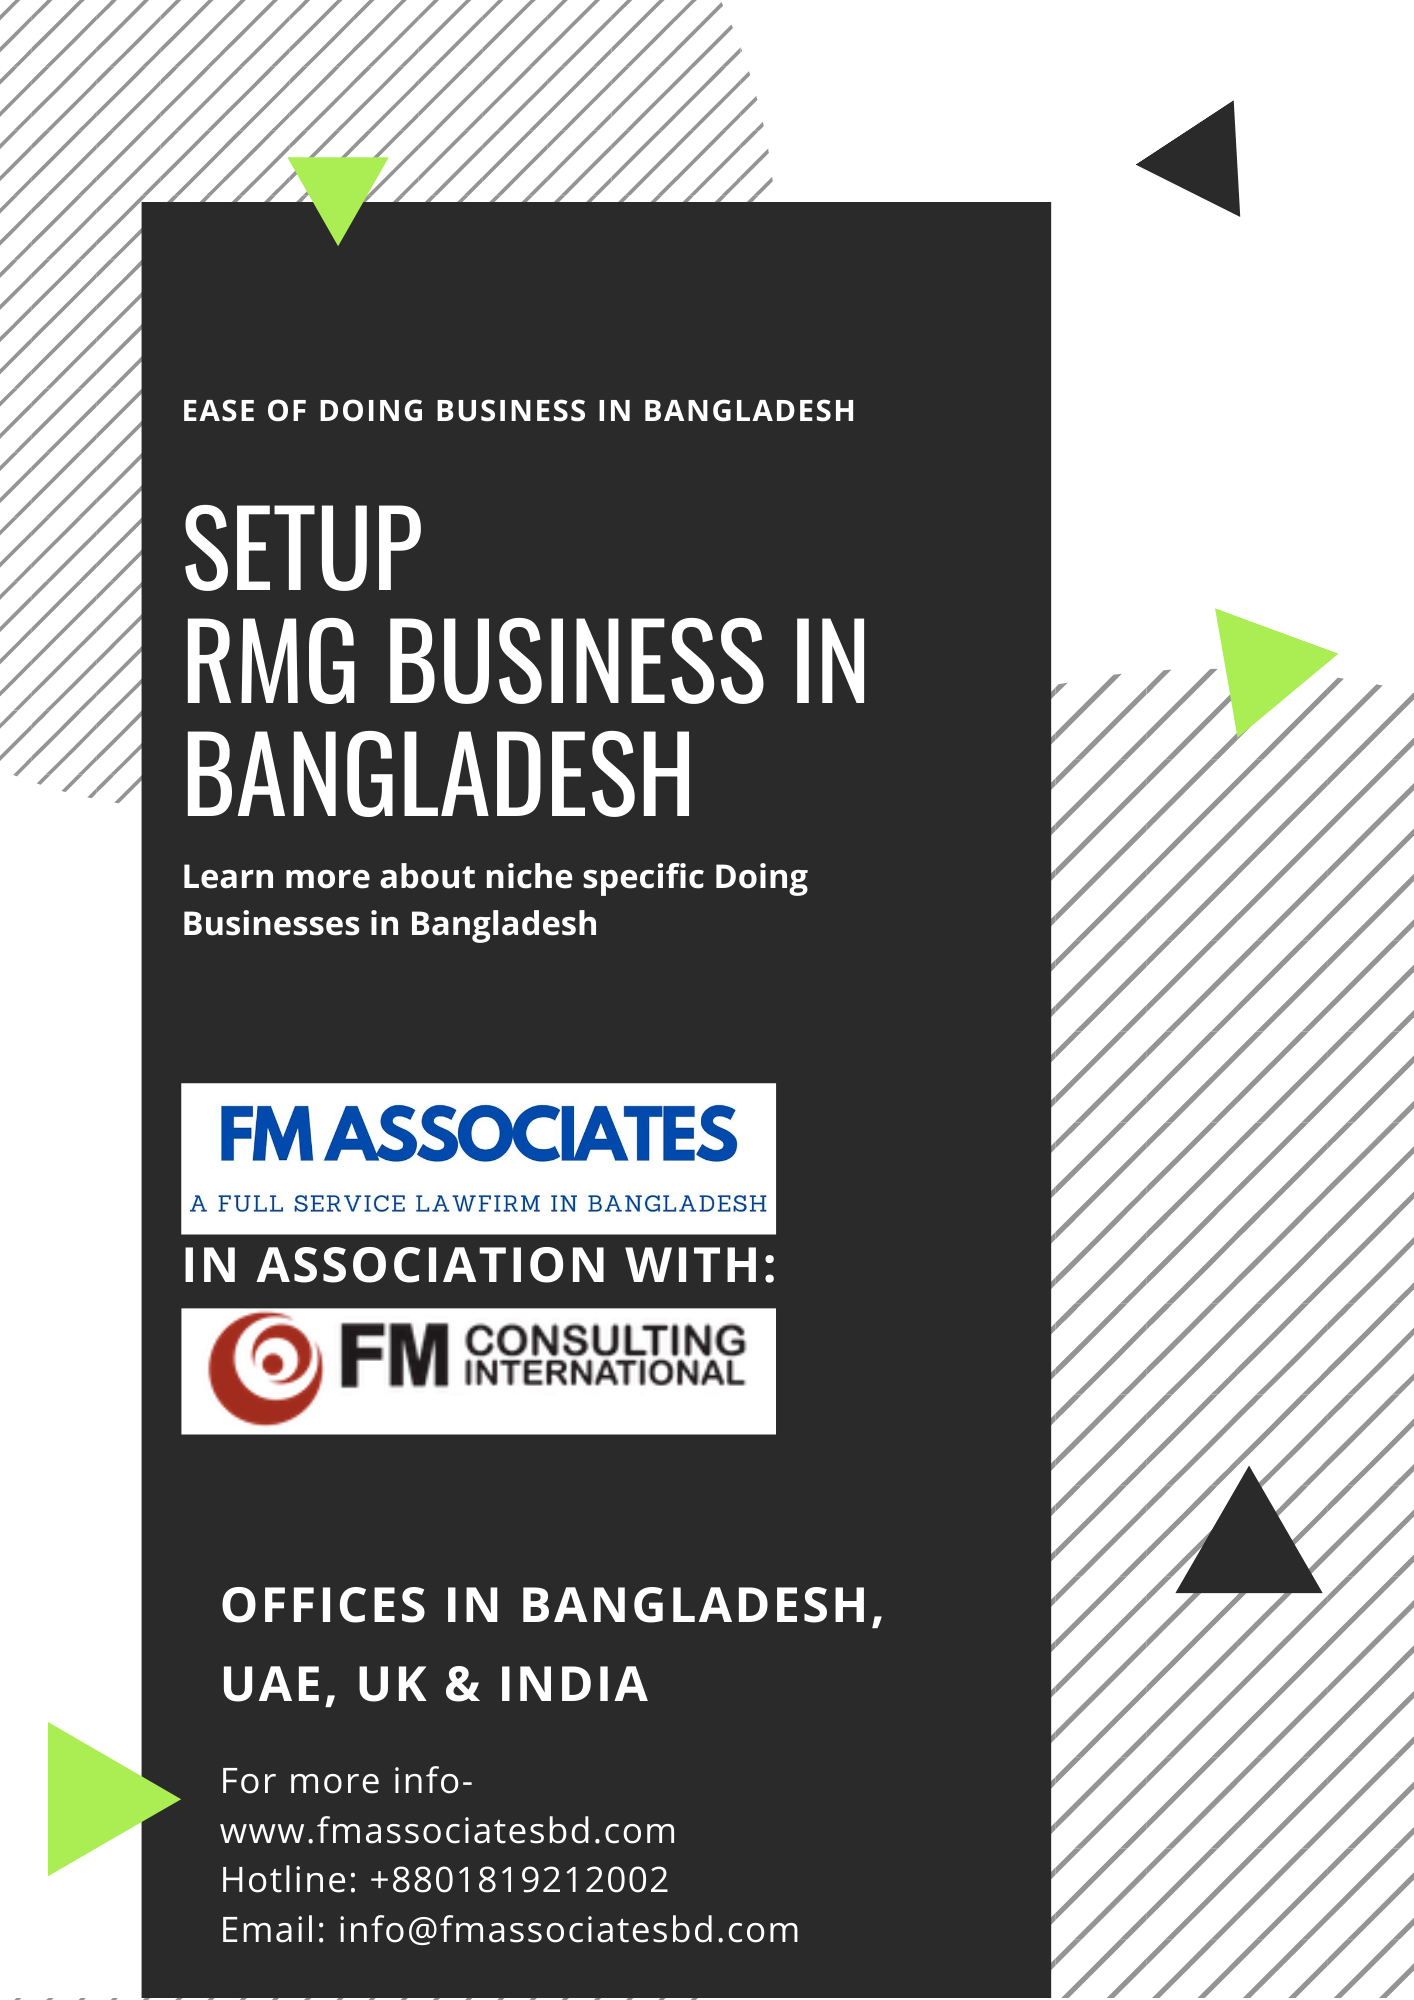 How to Setup Ready Made Business in Bangladesh